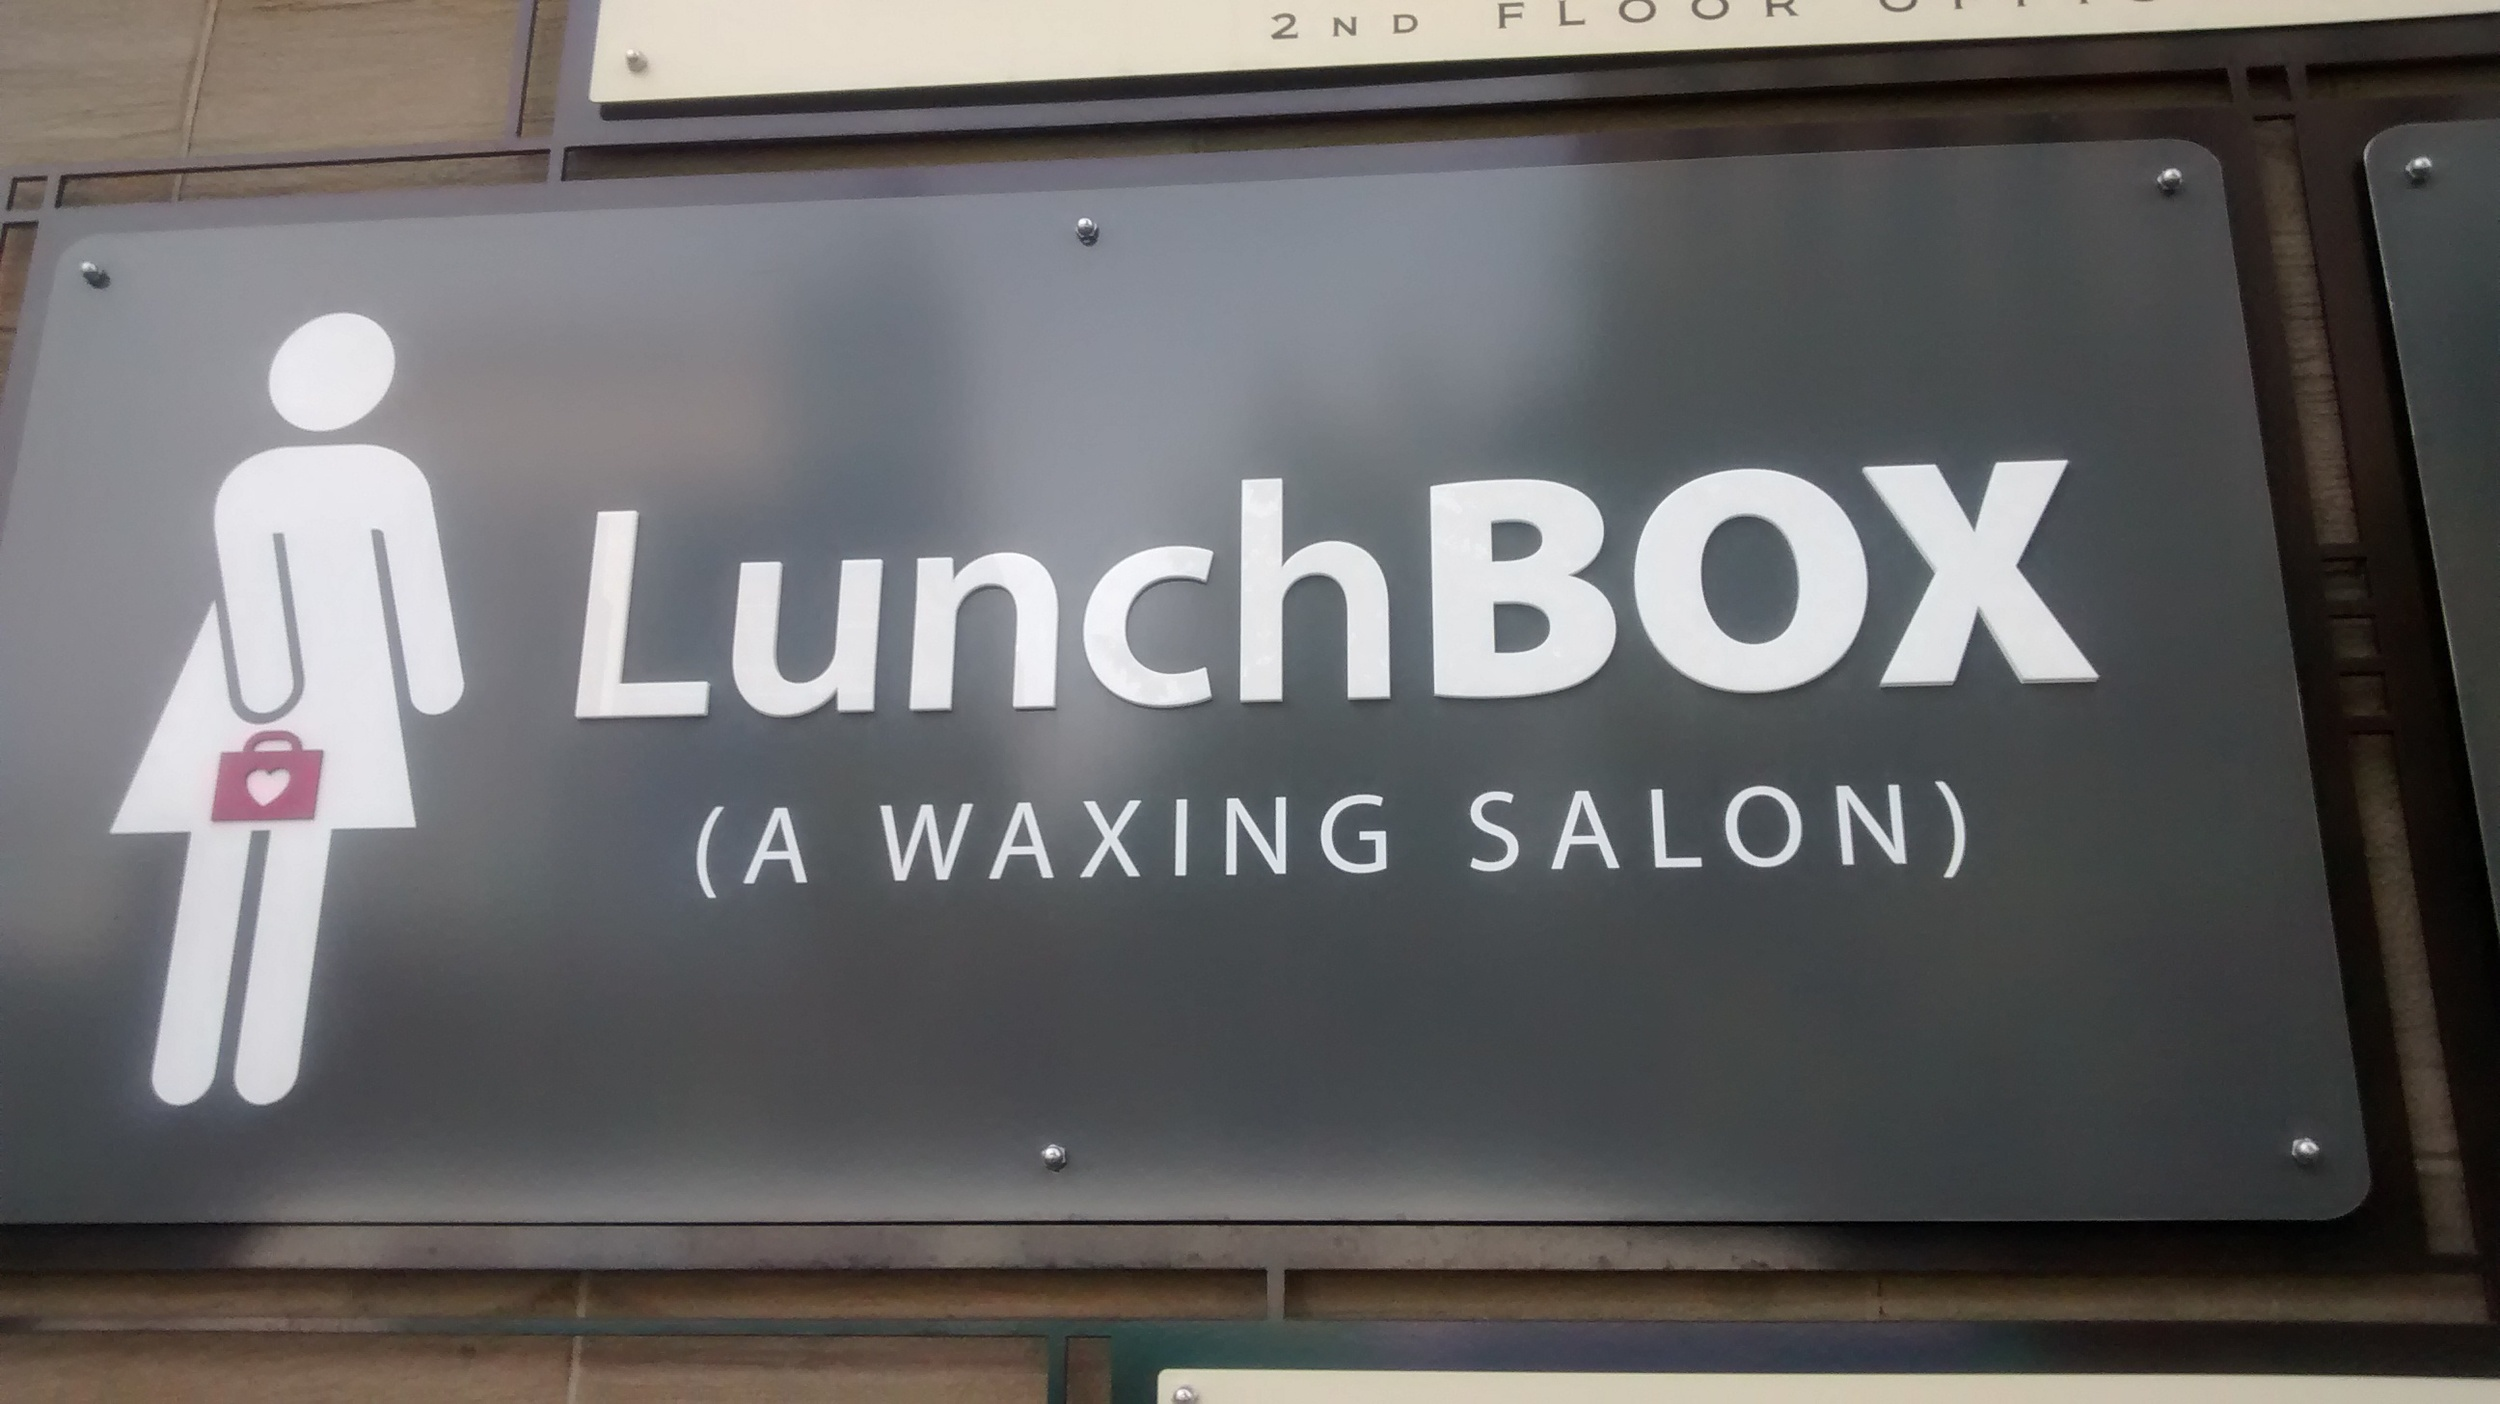 lunchbox ( A waxing salon)